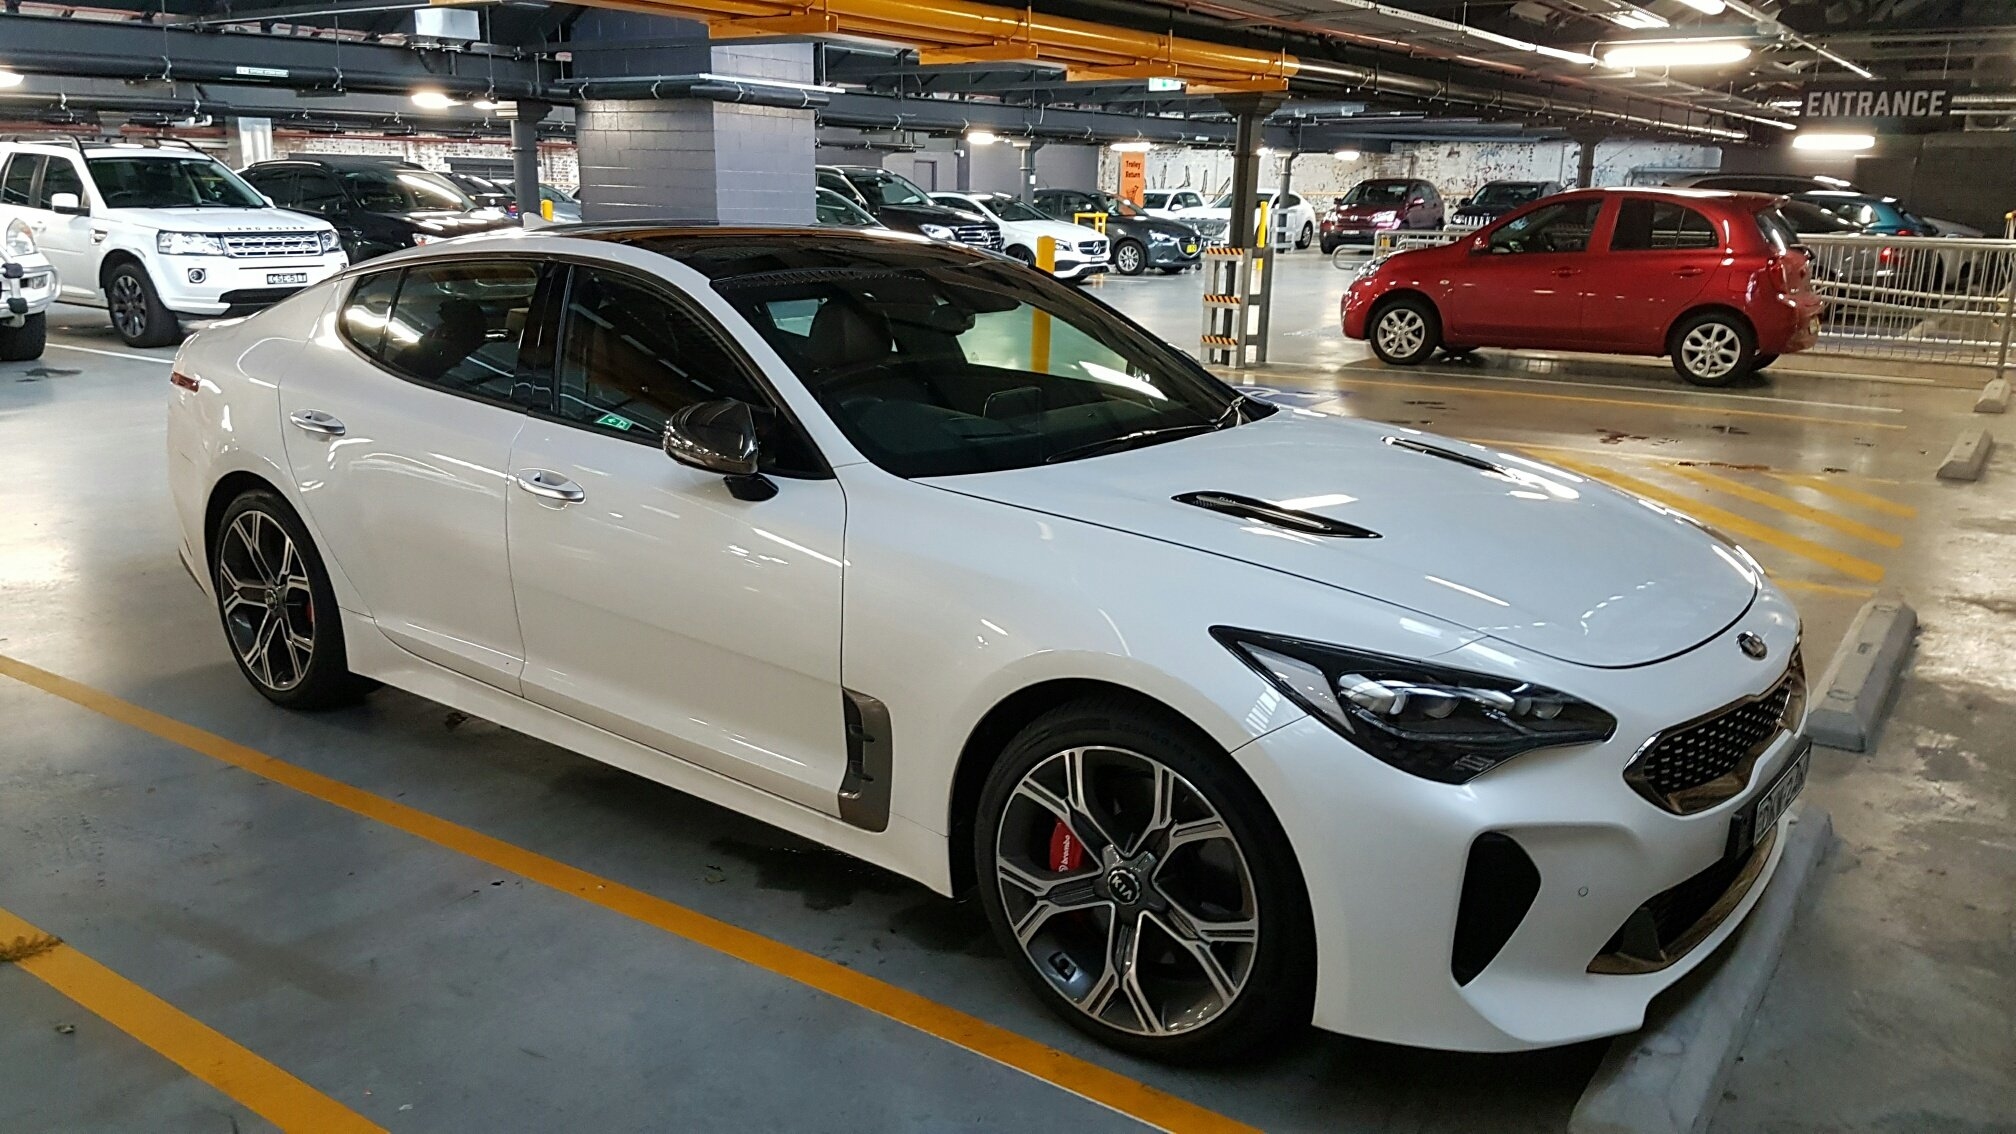 2017 Kia Stinger Gt Spied Testing In Sydney Photos Caradvice